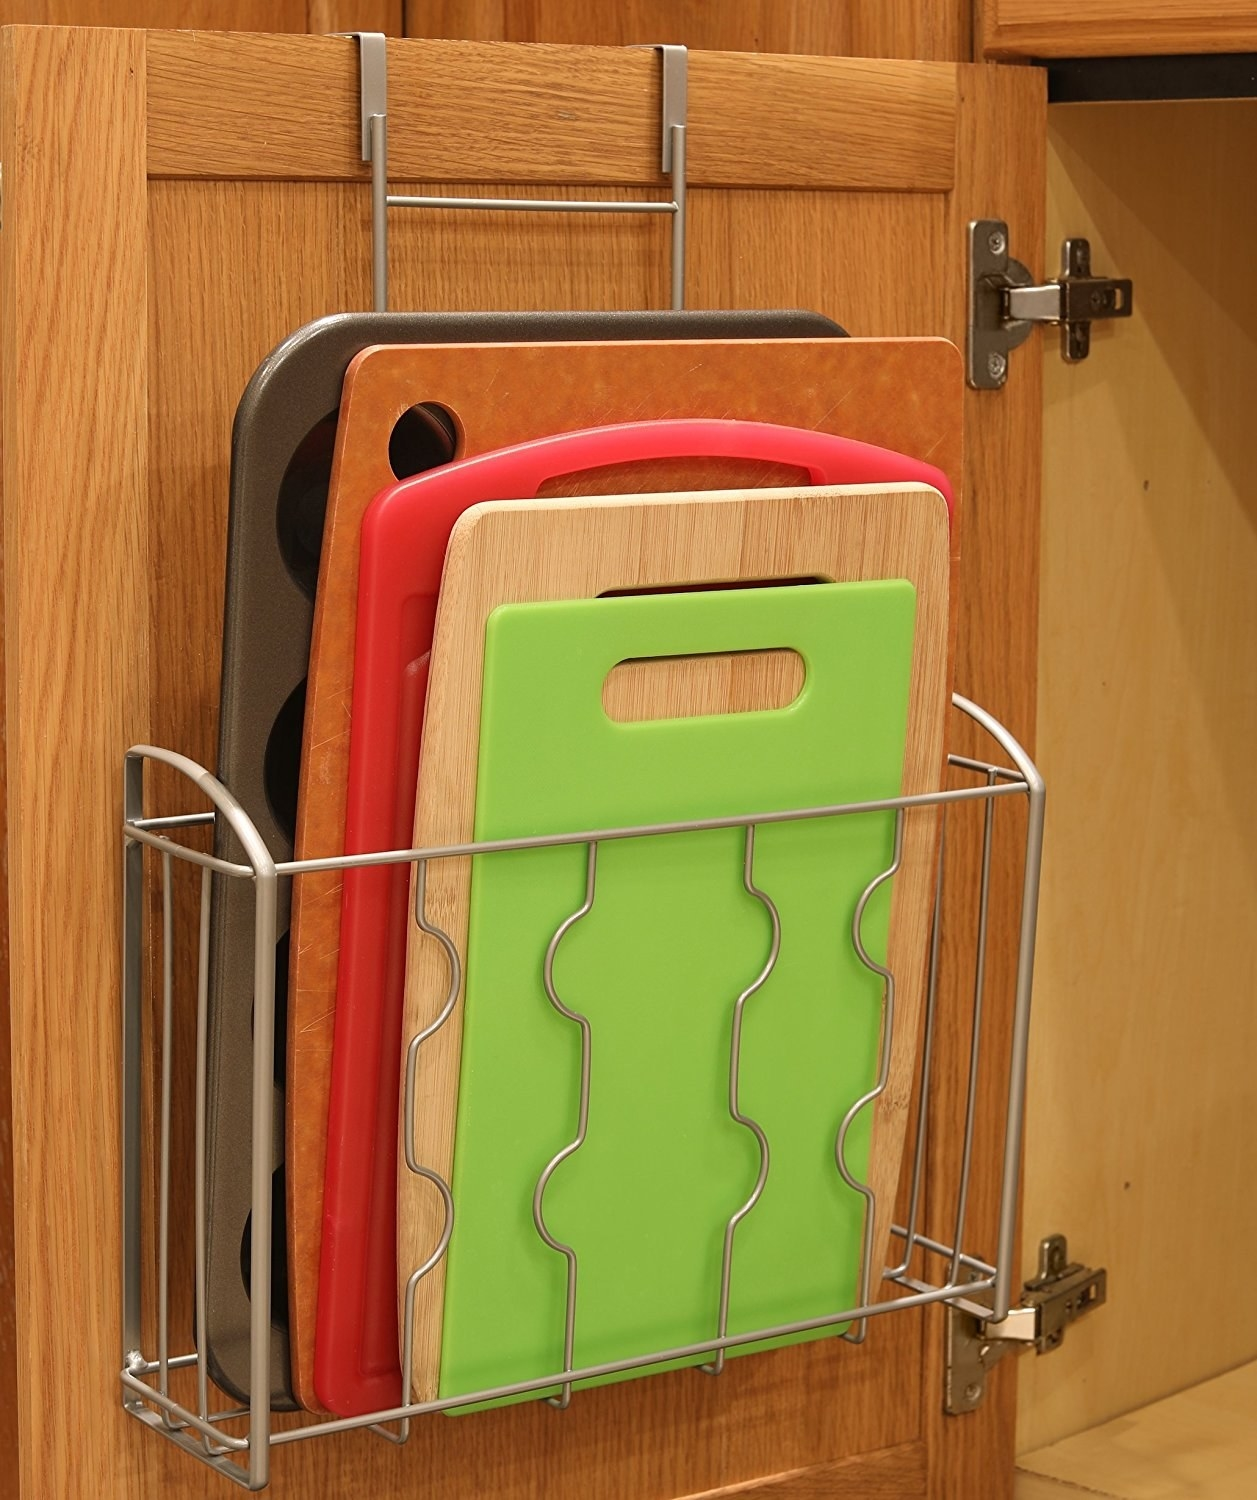 metal over-the-door hanger holding cutting boards and a muffin pan